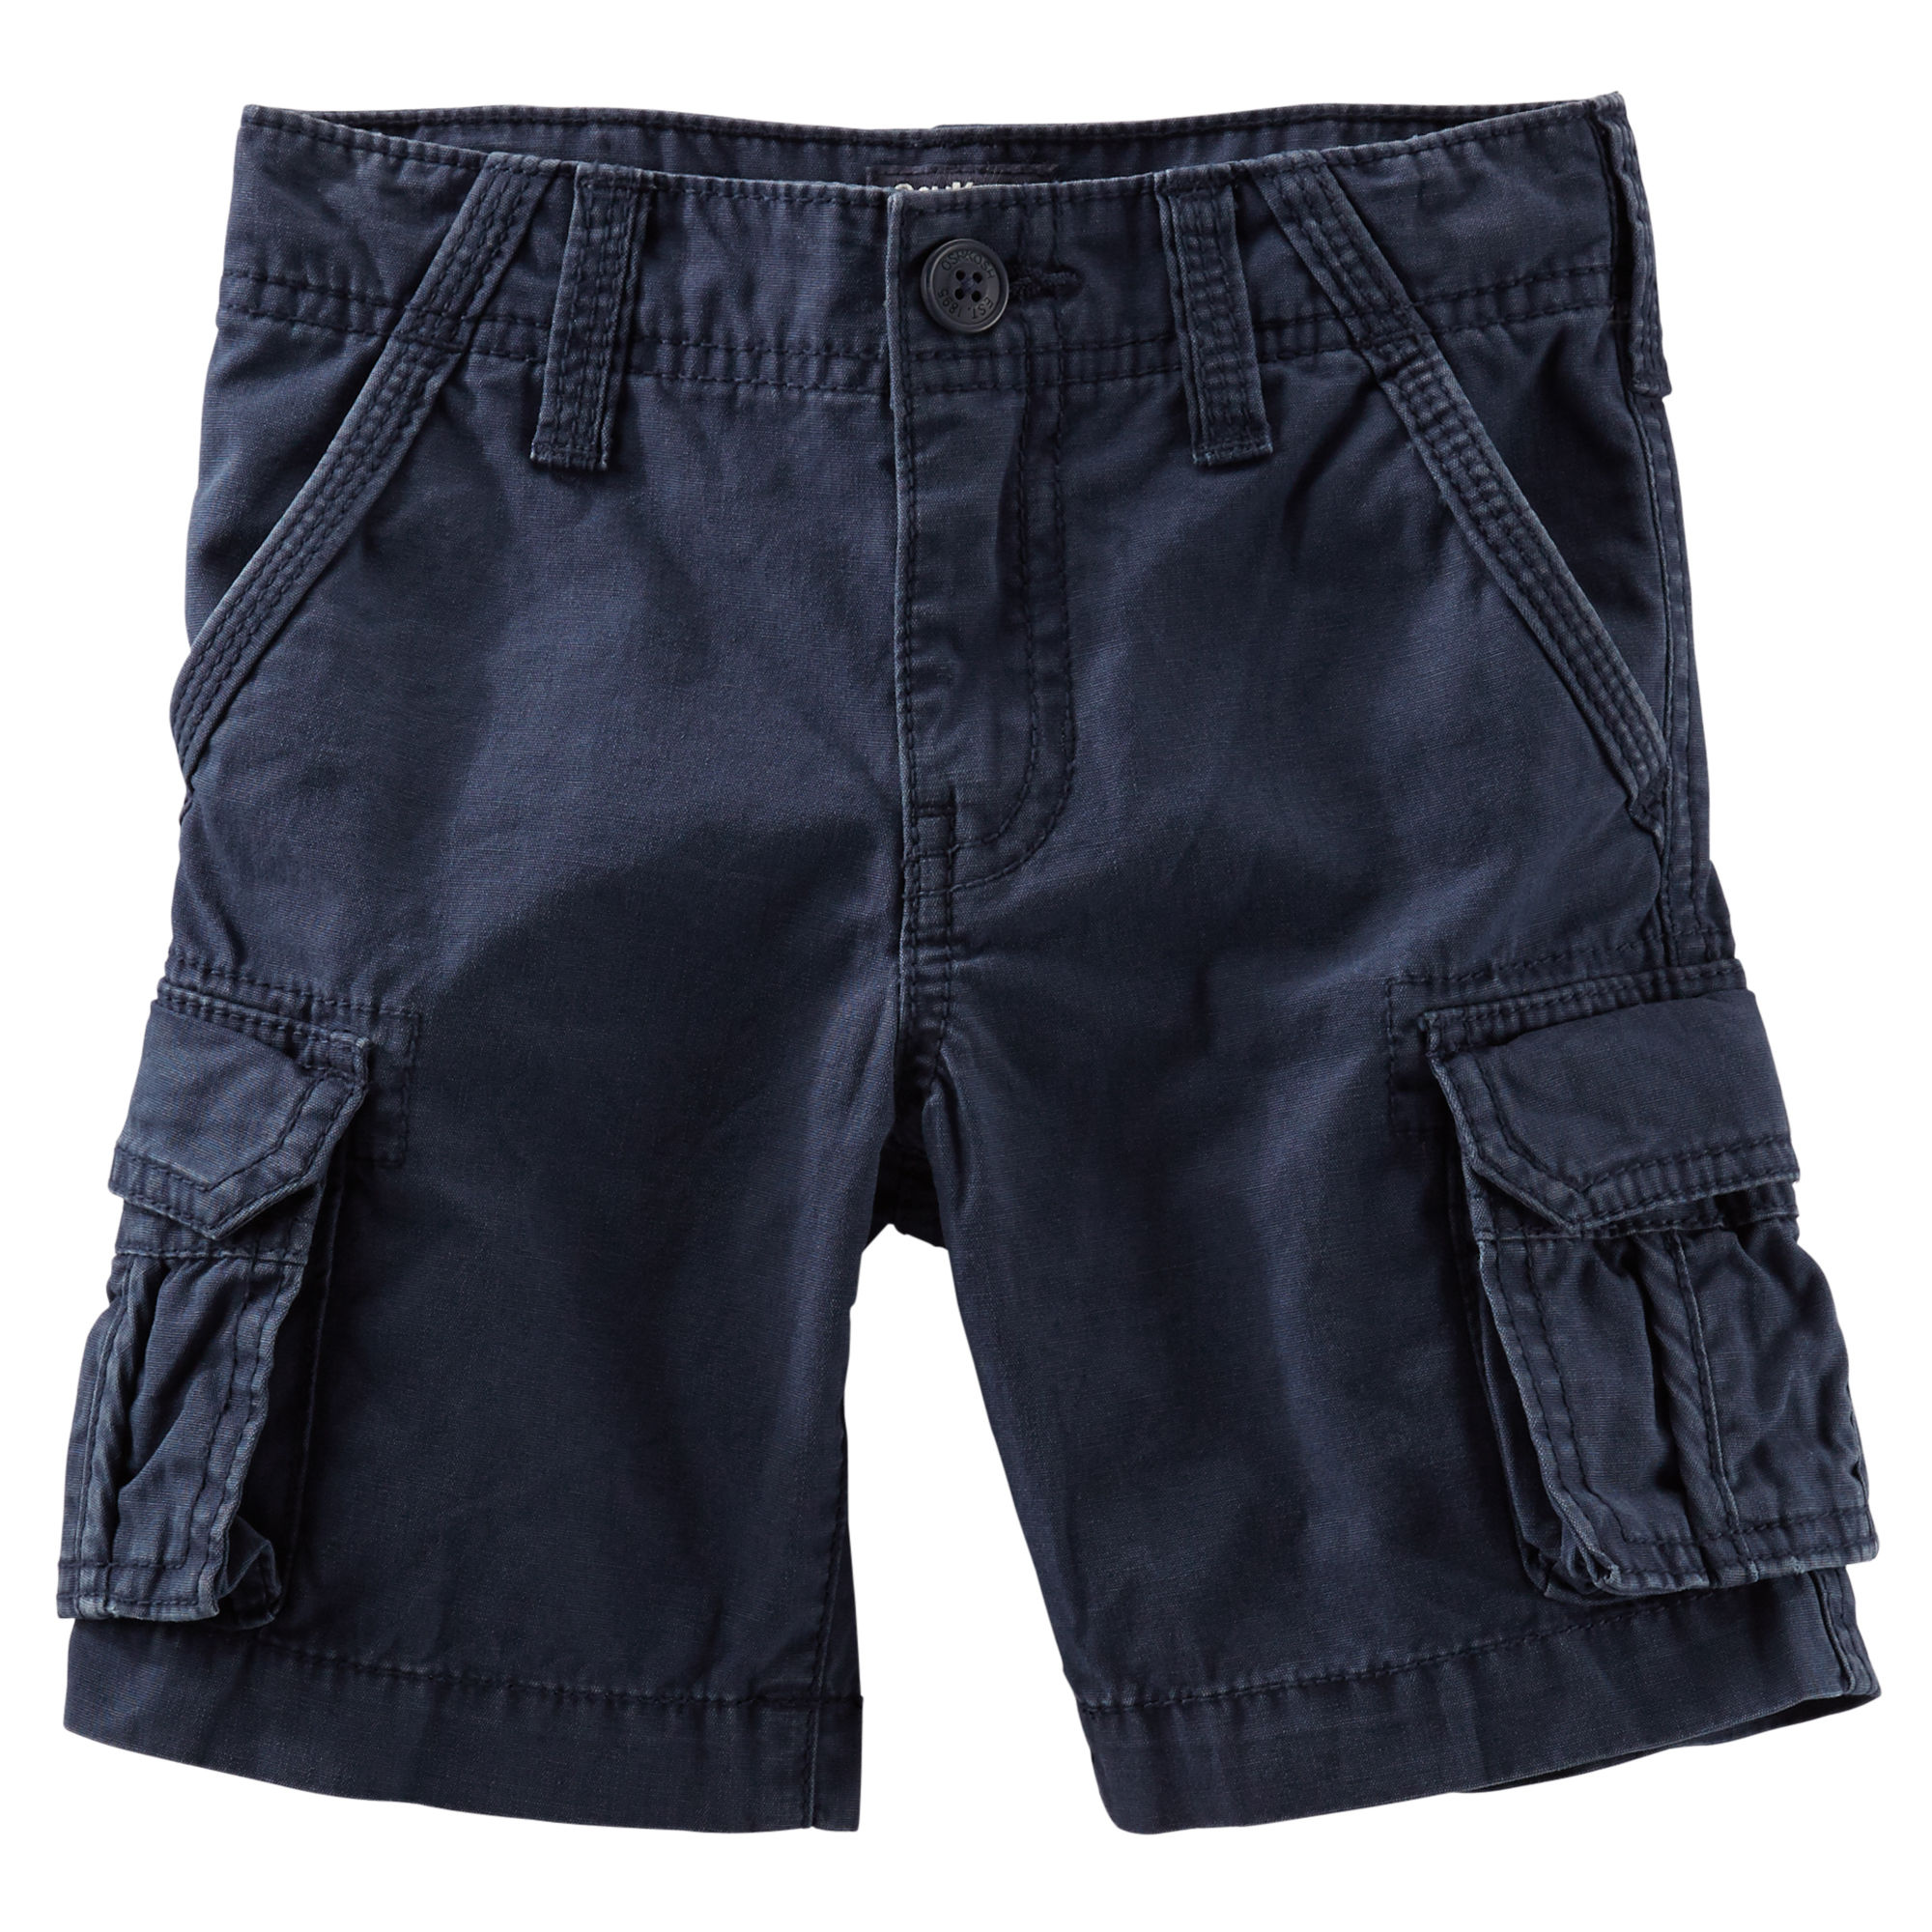 Find mens adjustable waist shorts from a vast selection of Shorts for Men. Get great deals on eBay!